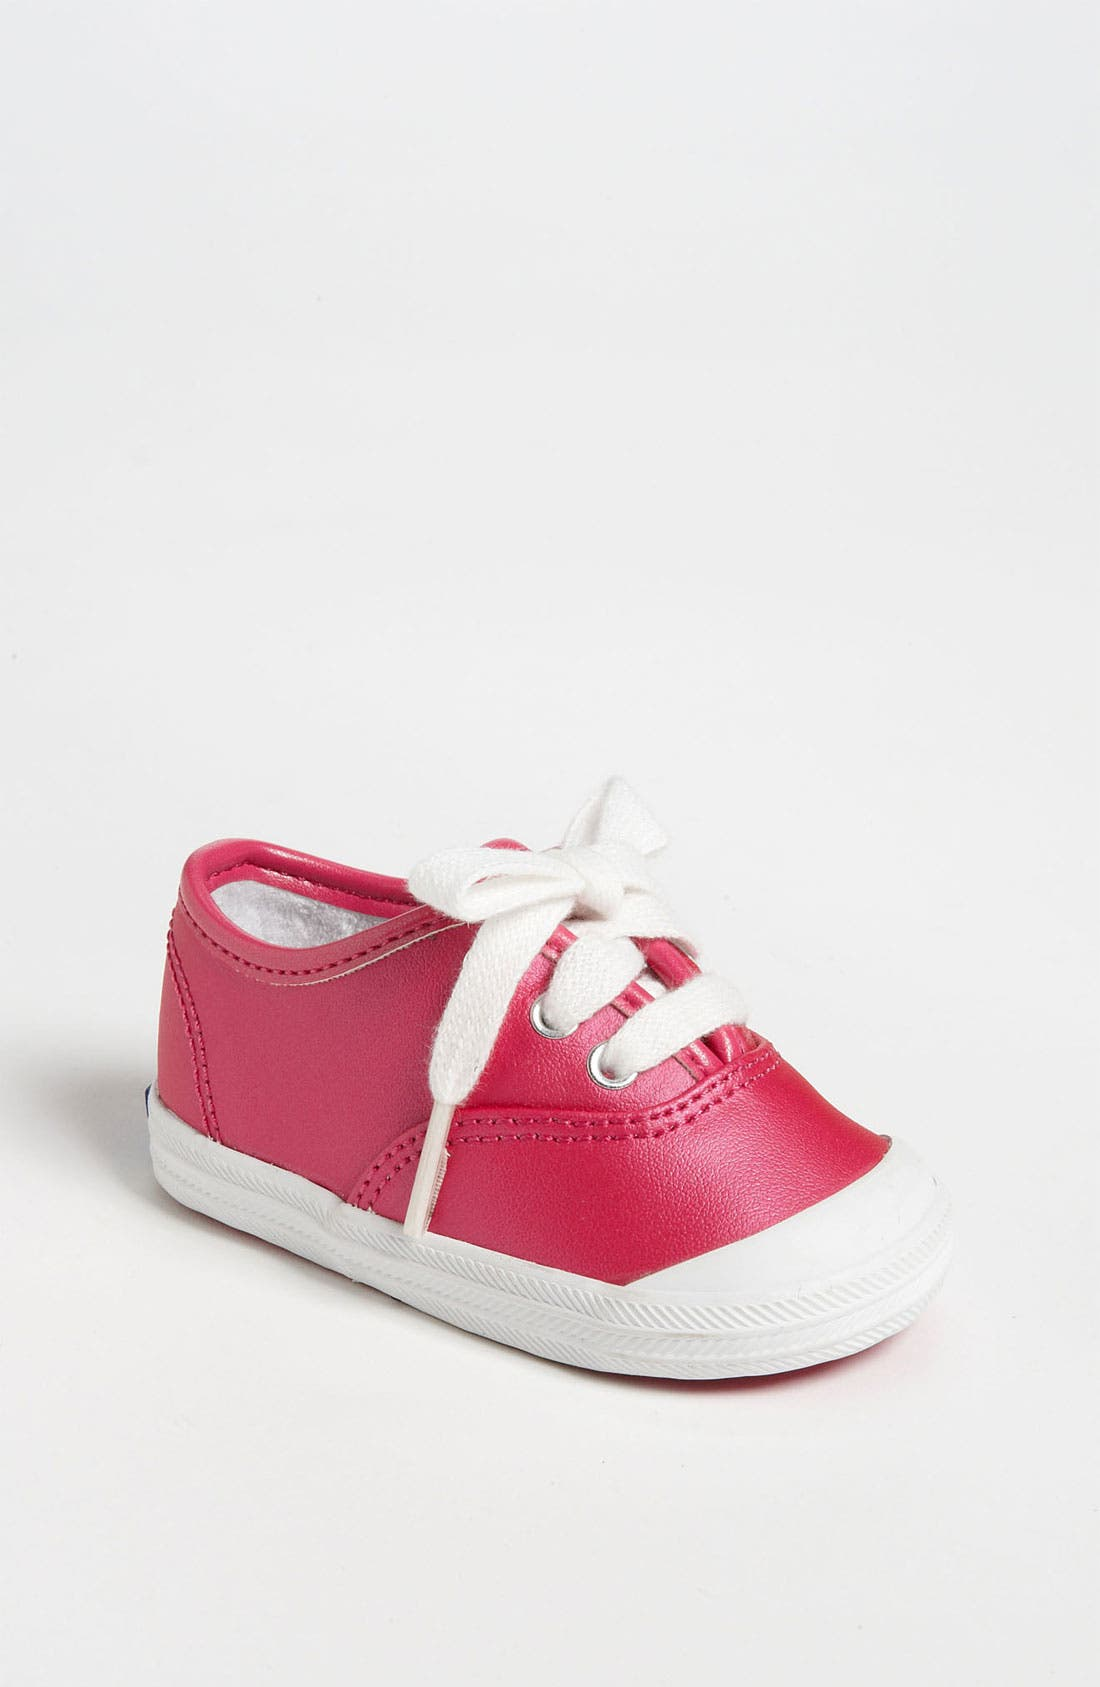 Alternate Image 1 Selected - Keds® 'Champion' Crib Shoe (Baby)